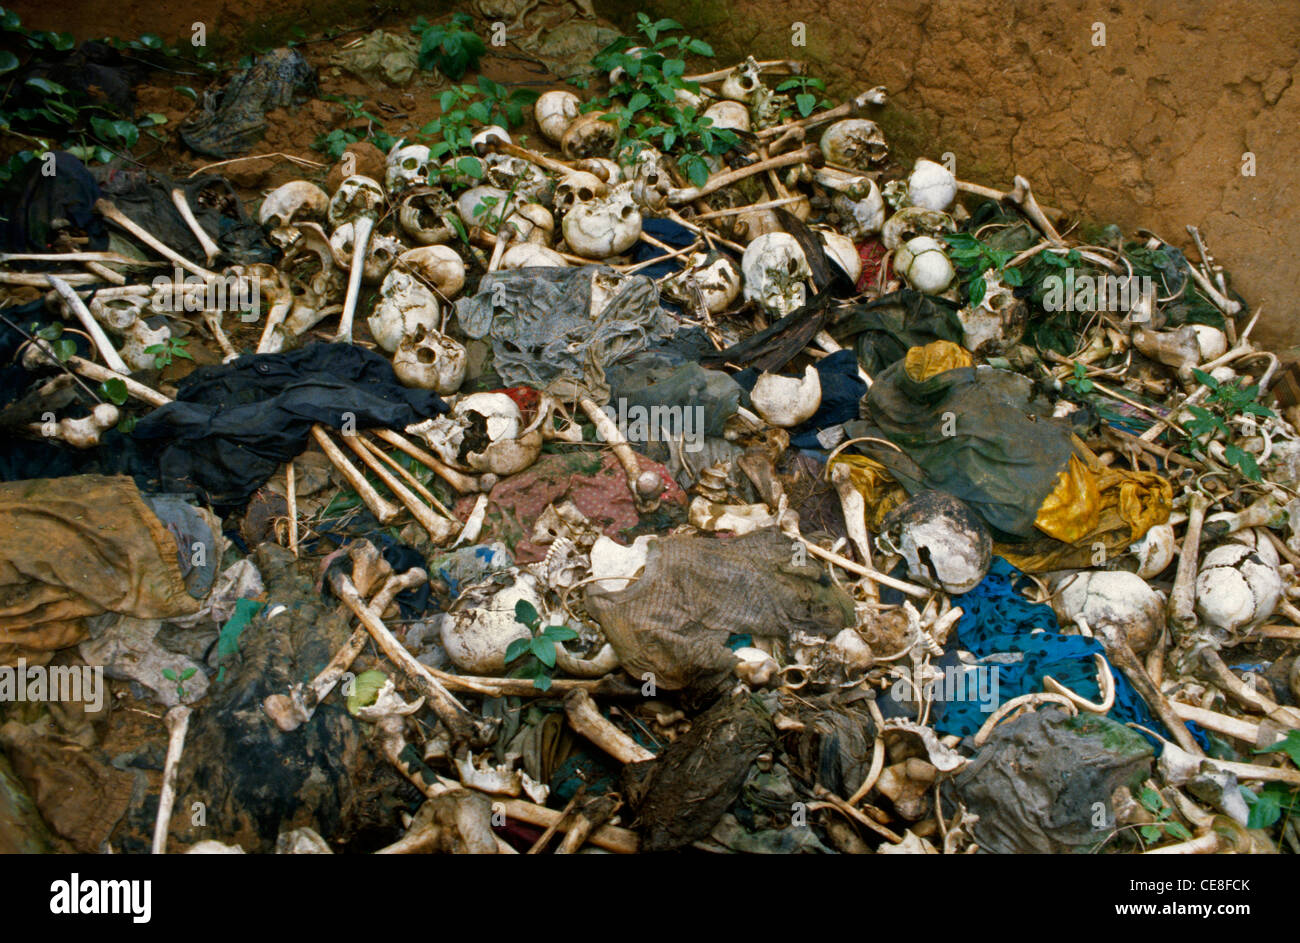 Bones of victims in a massacre left in a house in Rwanda - Stock Image